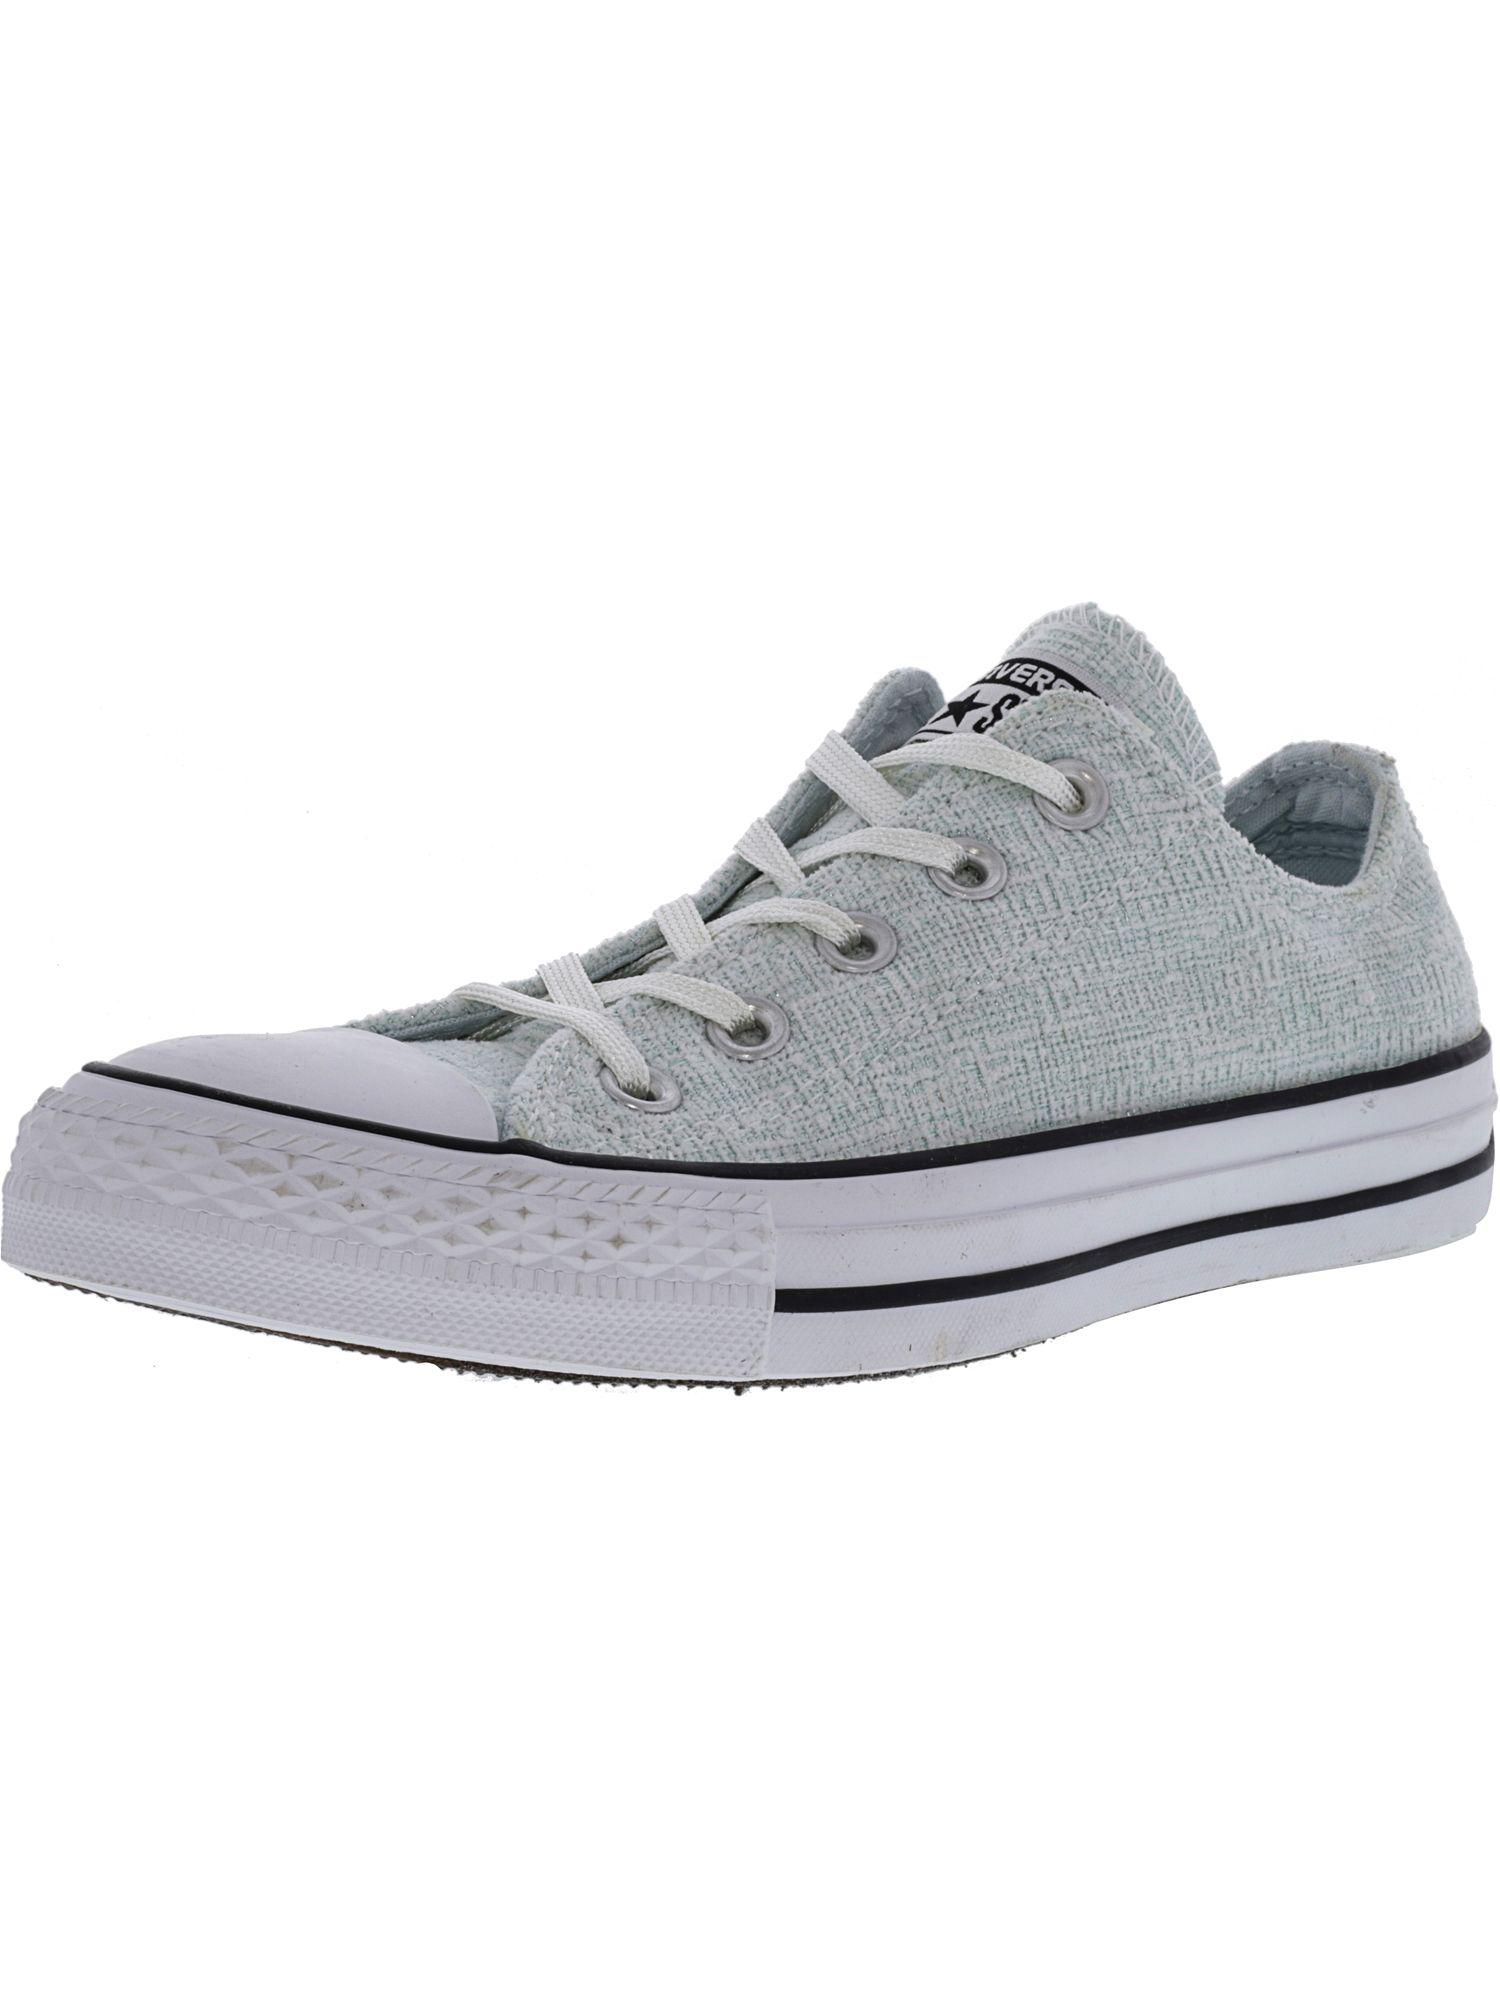 a0ffa2836ffde8 Lyst - Converse Women s Chuck Taylor All Star Sparkle Knit Ox Polar ...